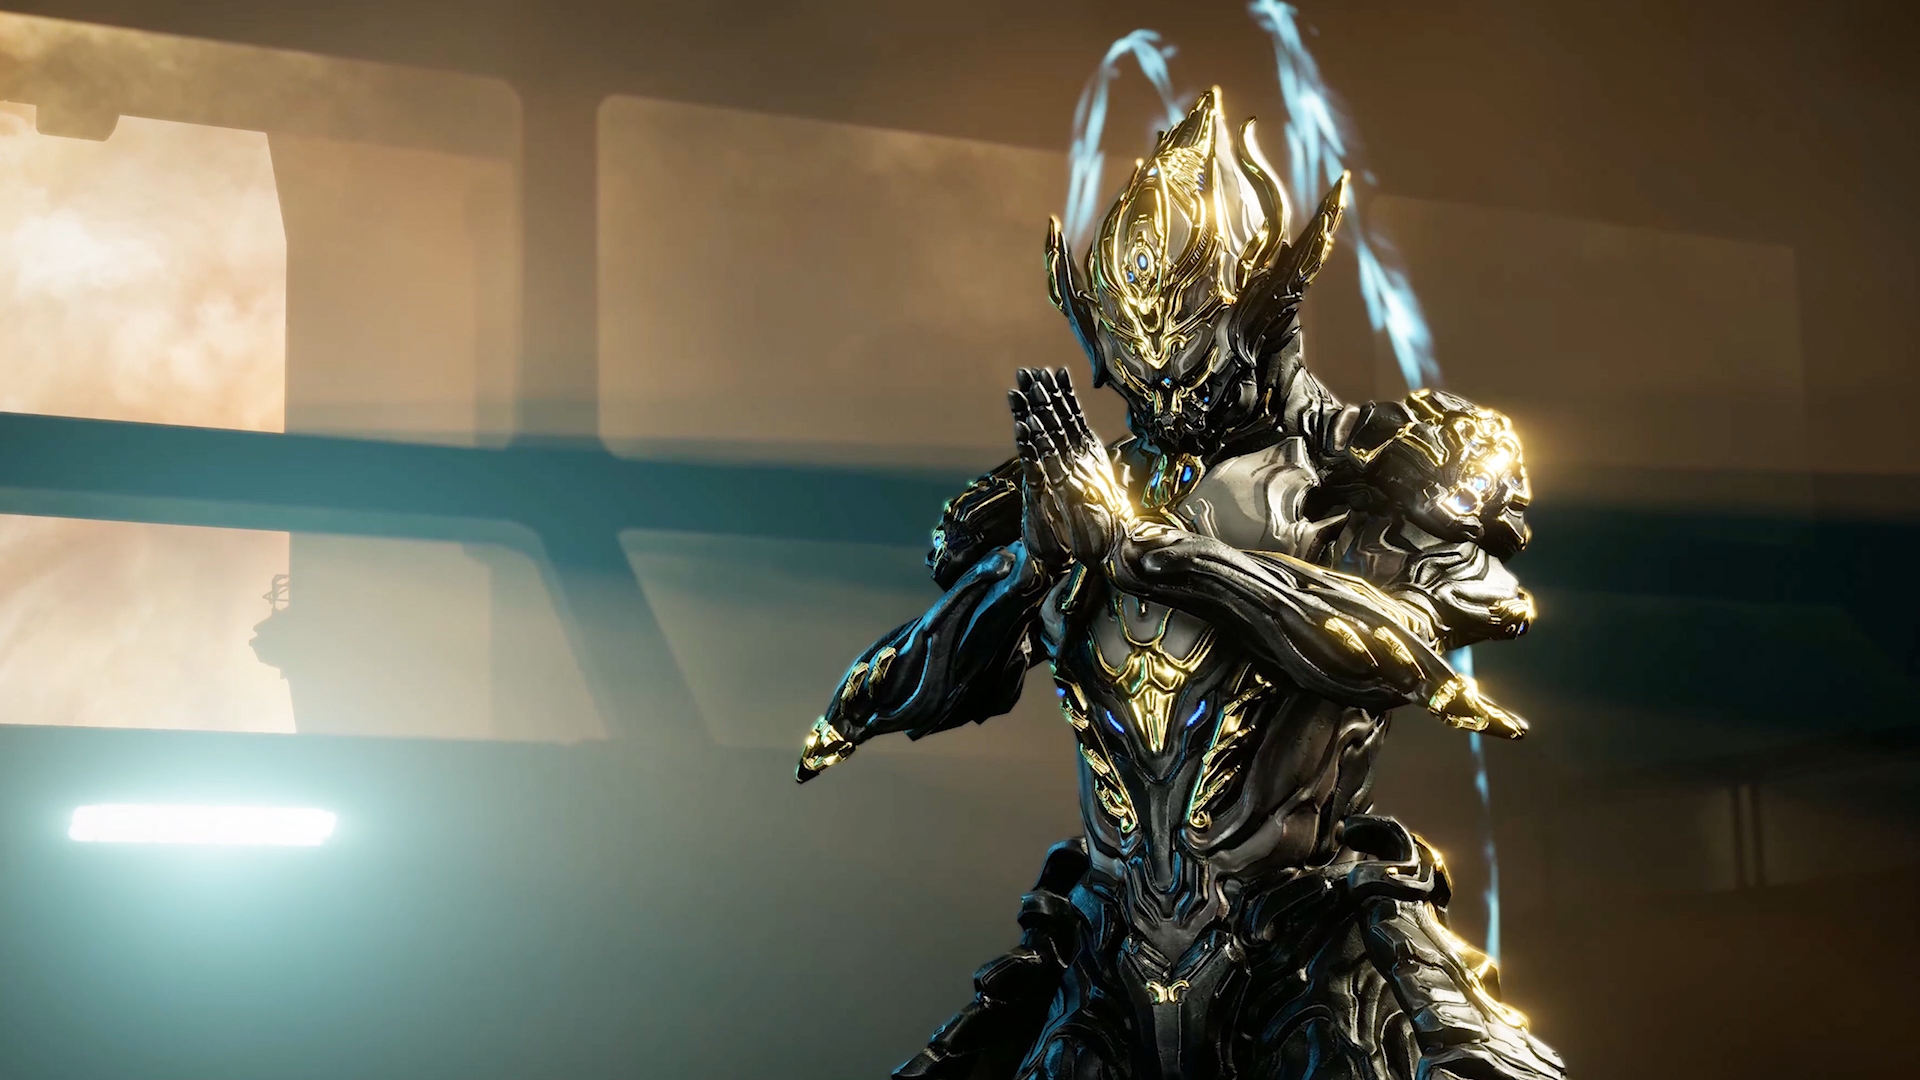 Best Place To Level Warframes 2020 5 things to know from Tennocon, the Warframe fan con   Polygon